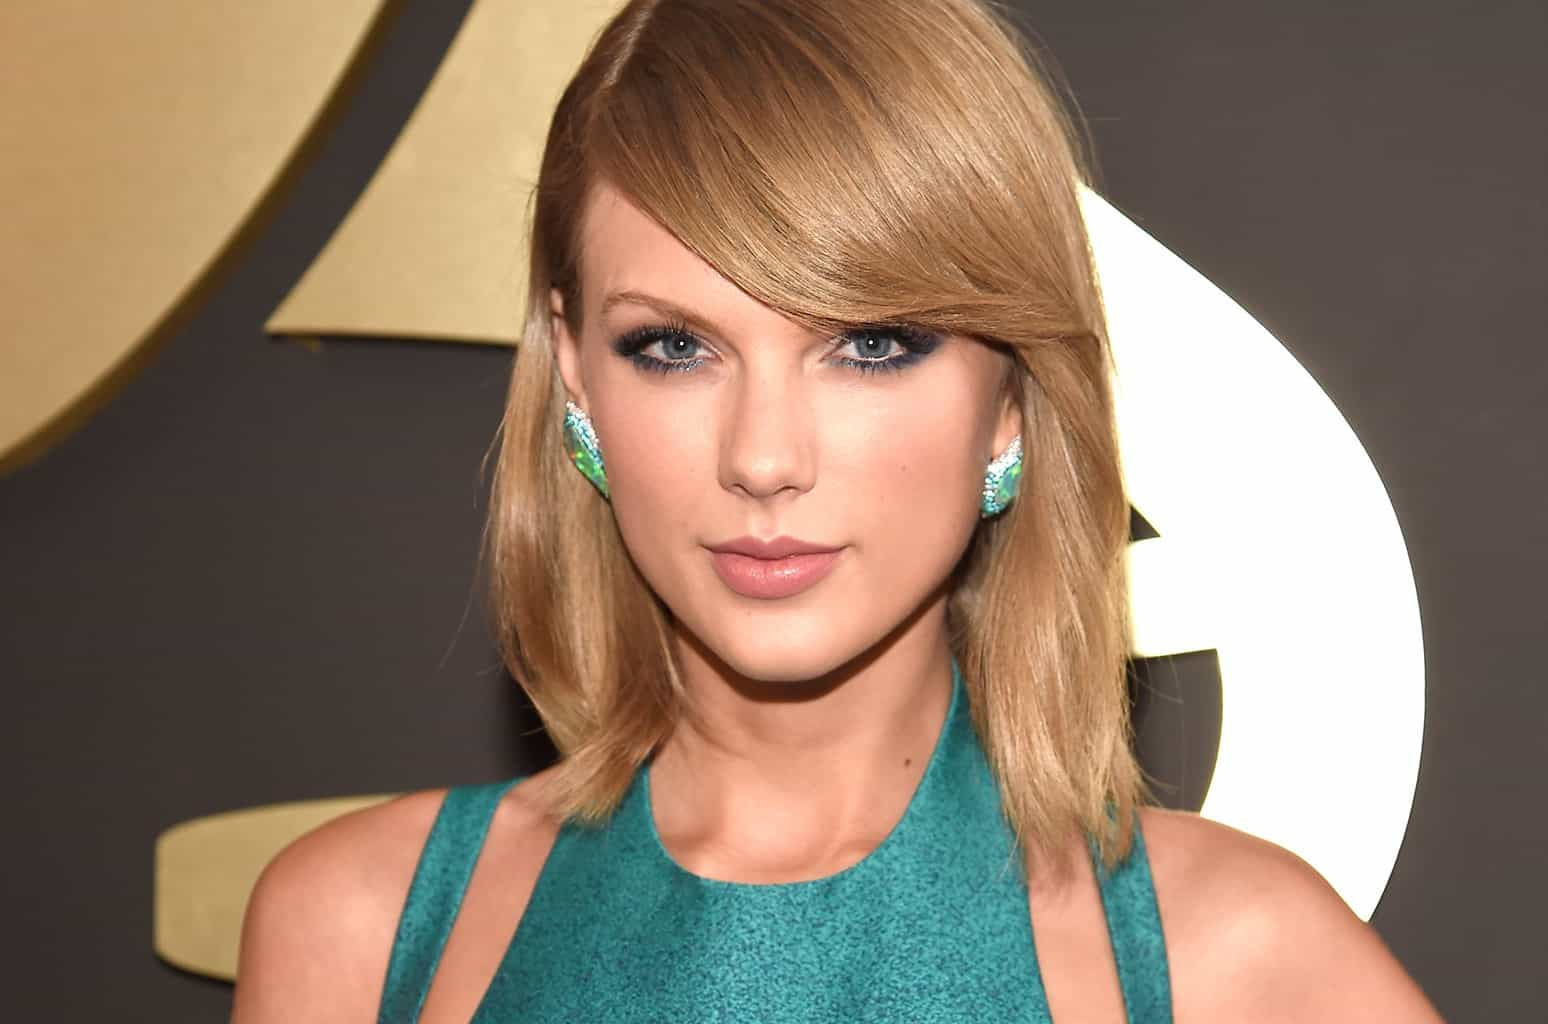 taylor swift marketing influence influenceur influenceuse instagram